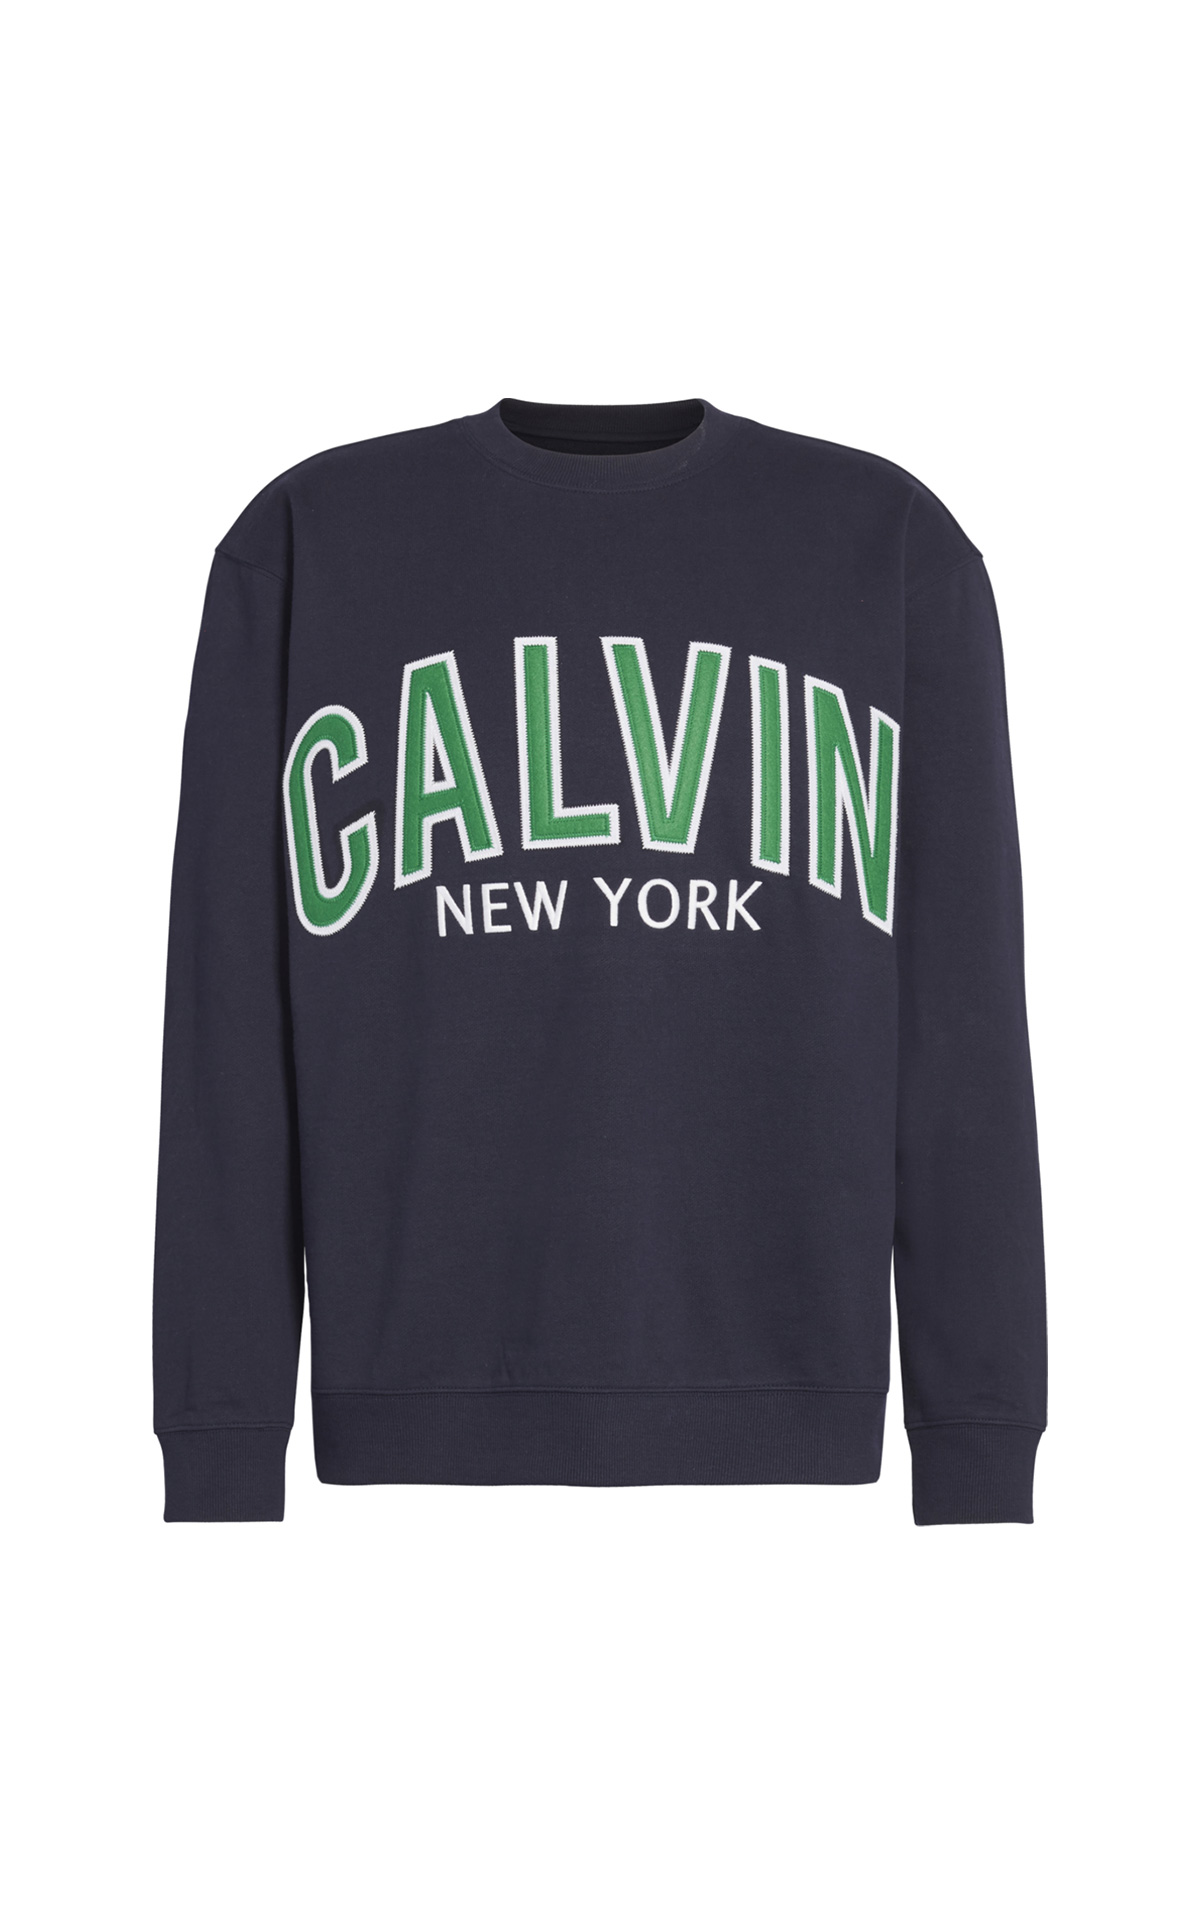 Calvin Klein jumper at The Bicester Village Shopping Collection